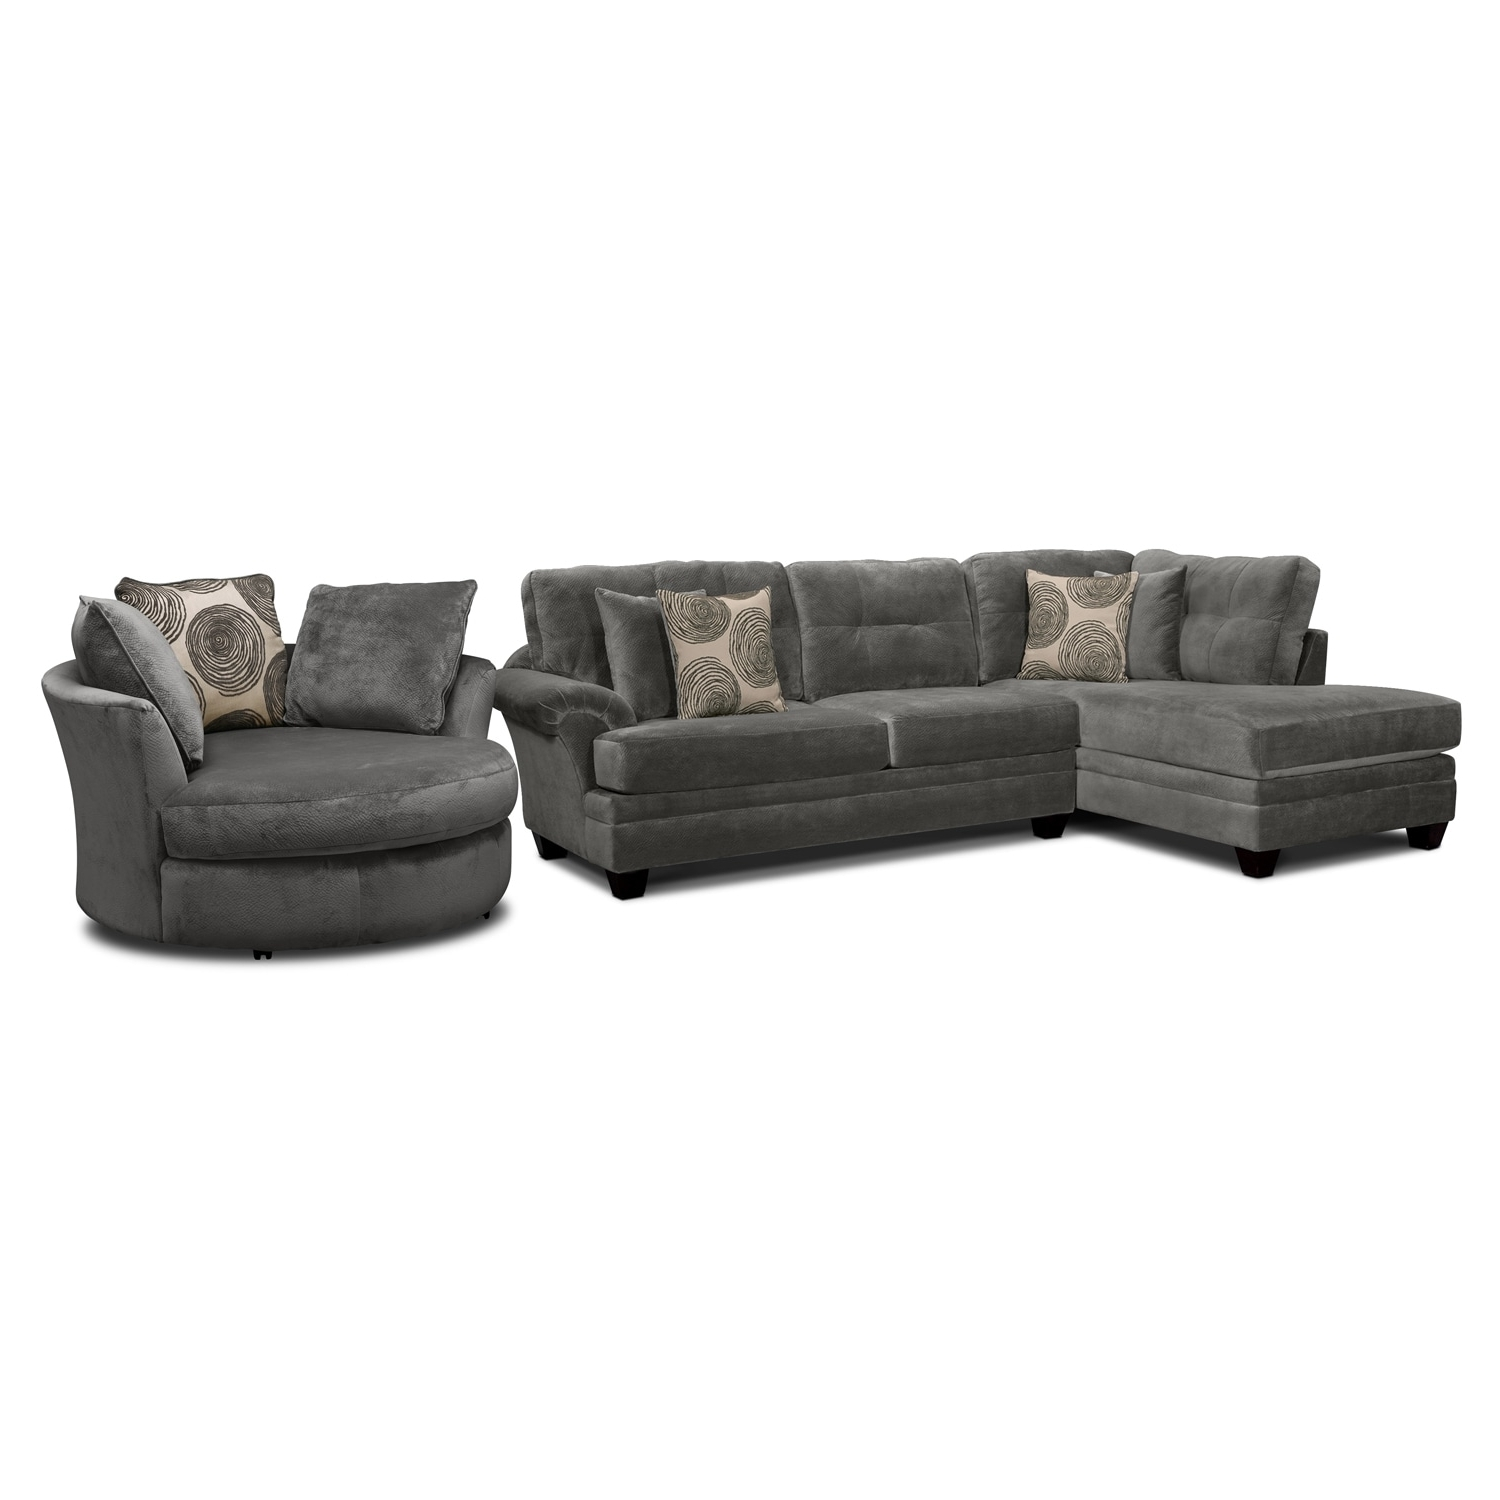 Sofas With Swivel Chair Regarding Most Popular Cordelle 2 Piece Left Facing Chaise Sectional And Swivel Chair Set (View 14 of 20)